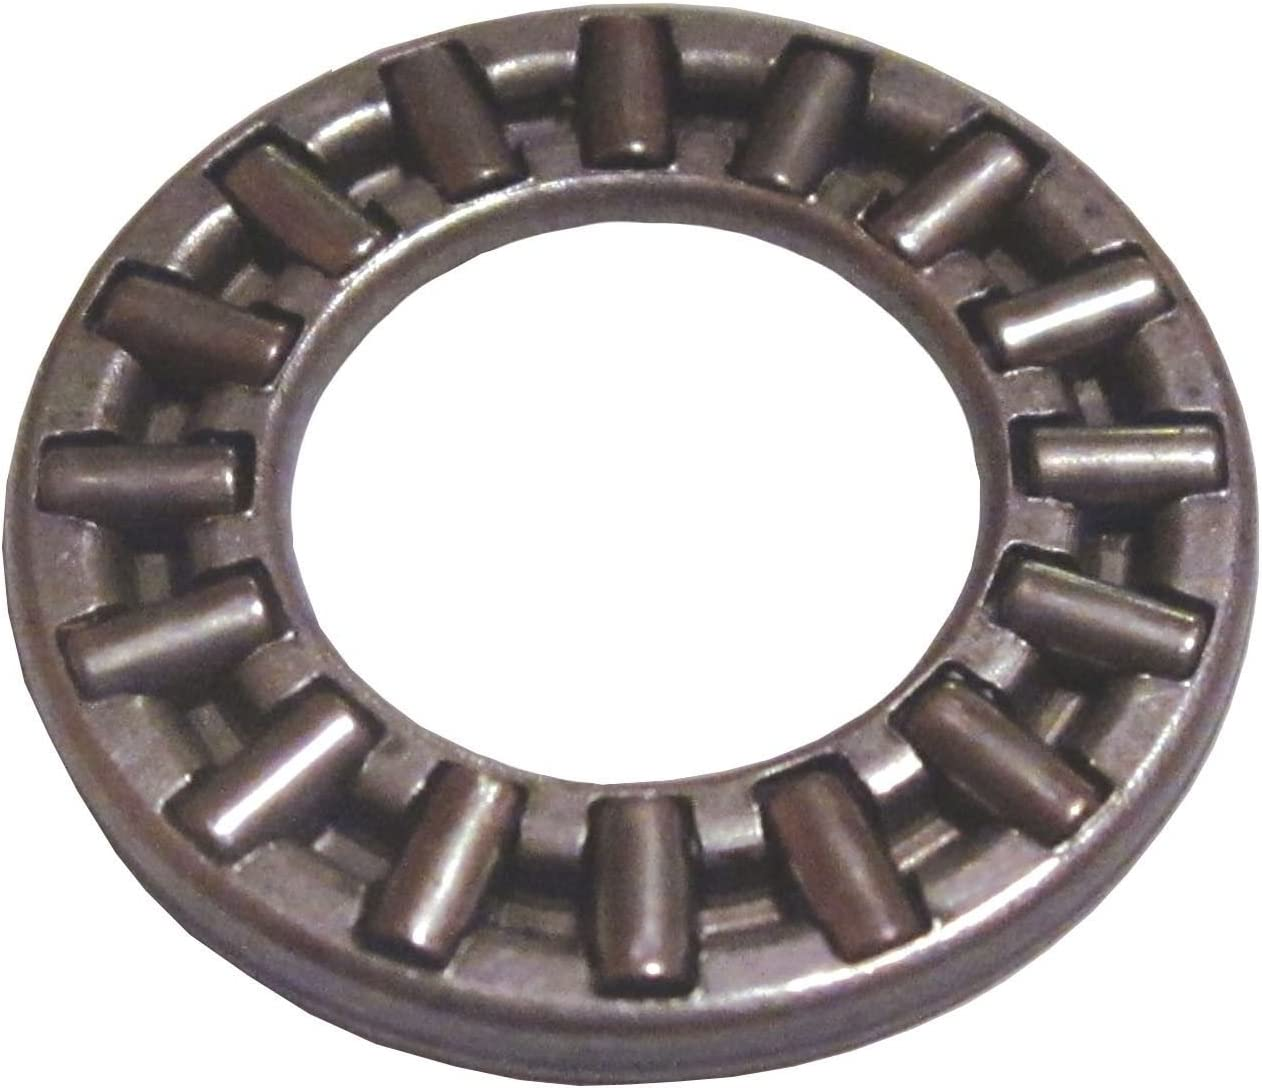 Polaris Sportsman Ranger Front Differential Thrust Needle Bearing 3233929